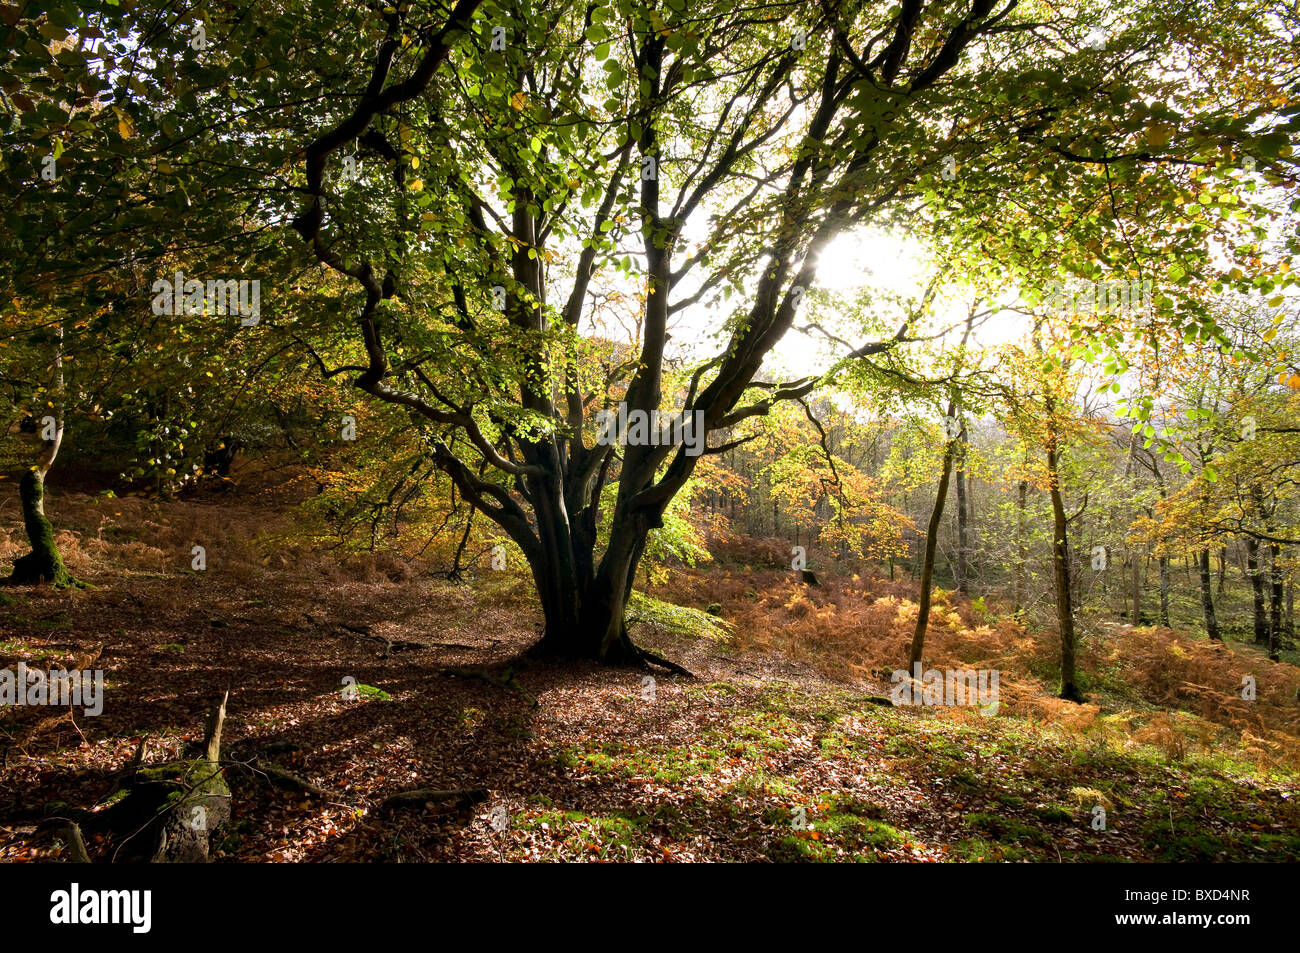 Beech Tree in Autumn Colour - Stock Image